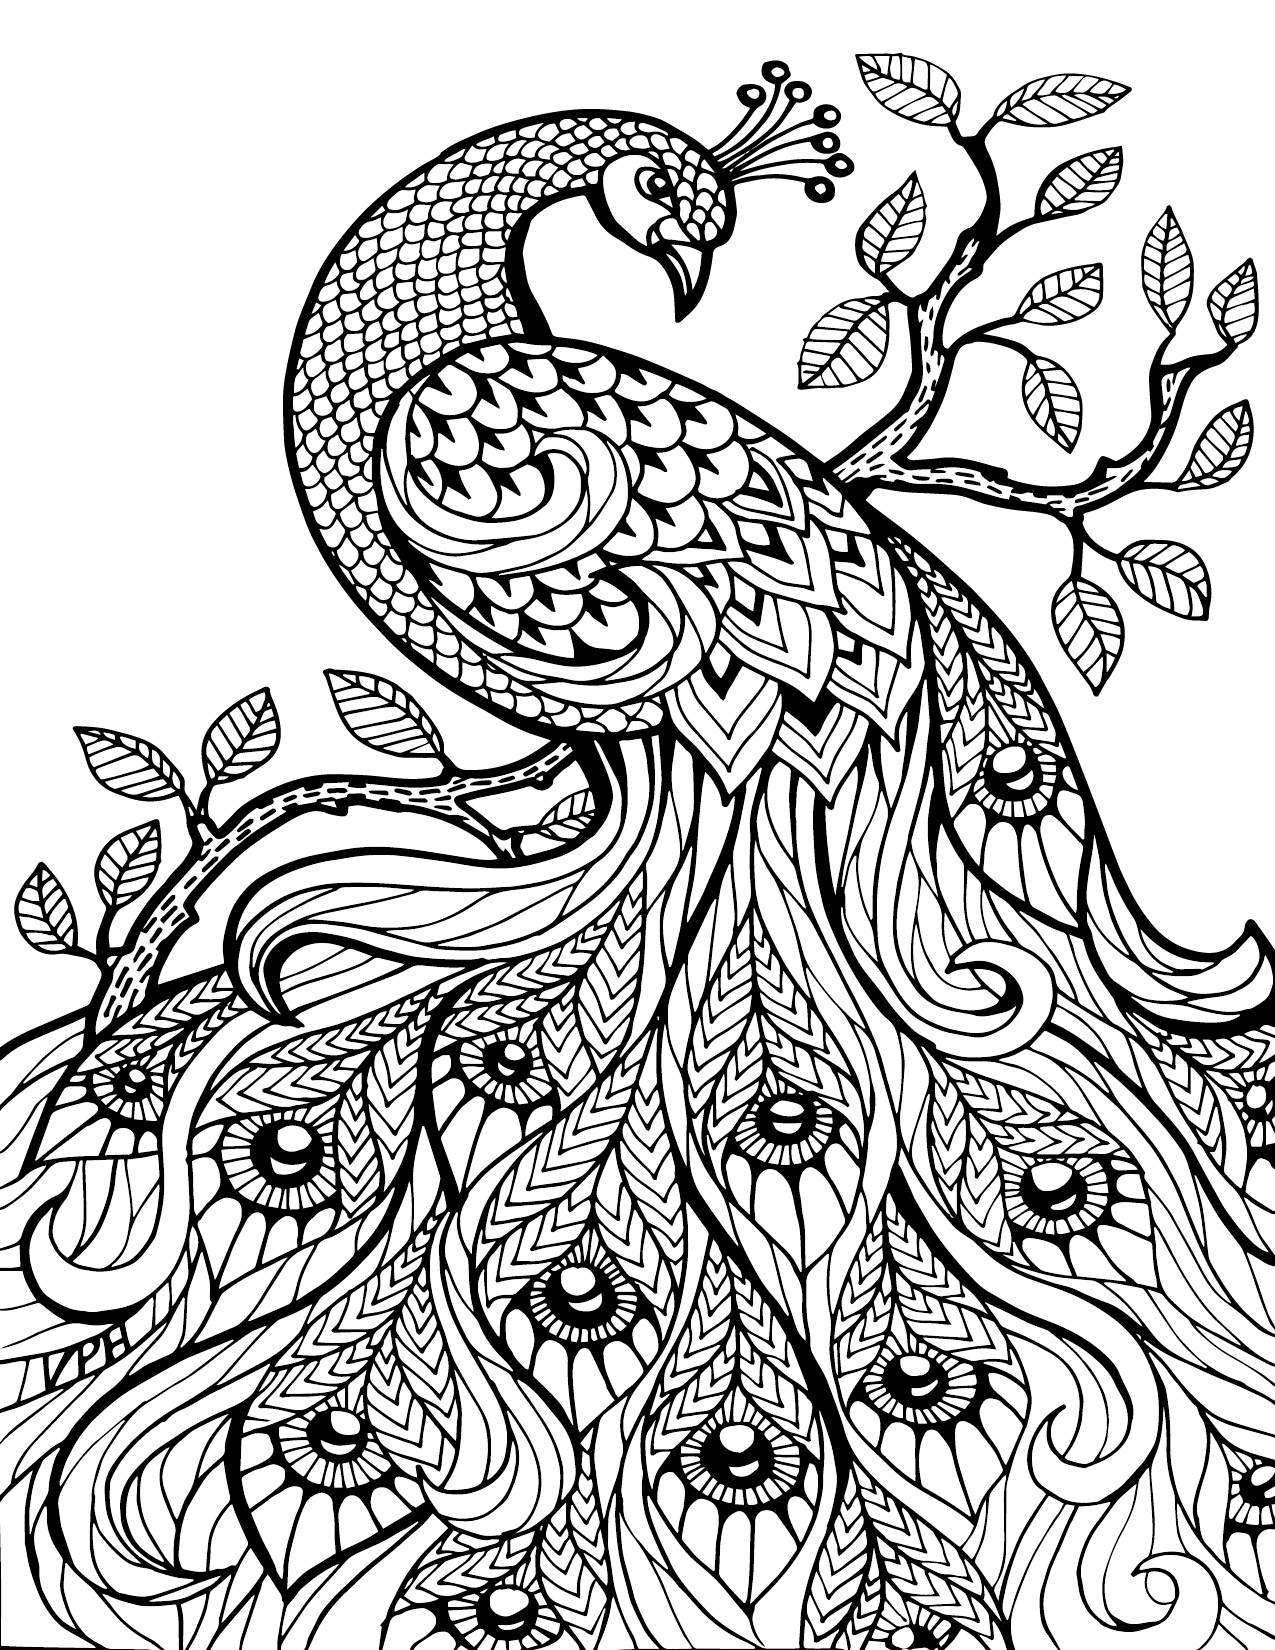 1275x1650 Cool Coloring Pages Of Animals Acpra